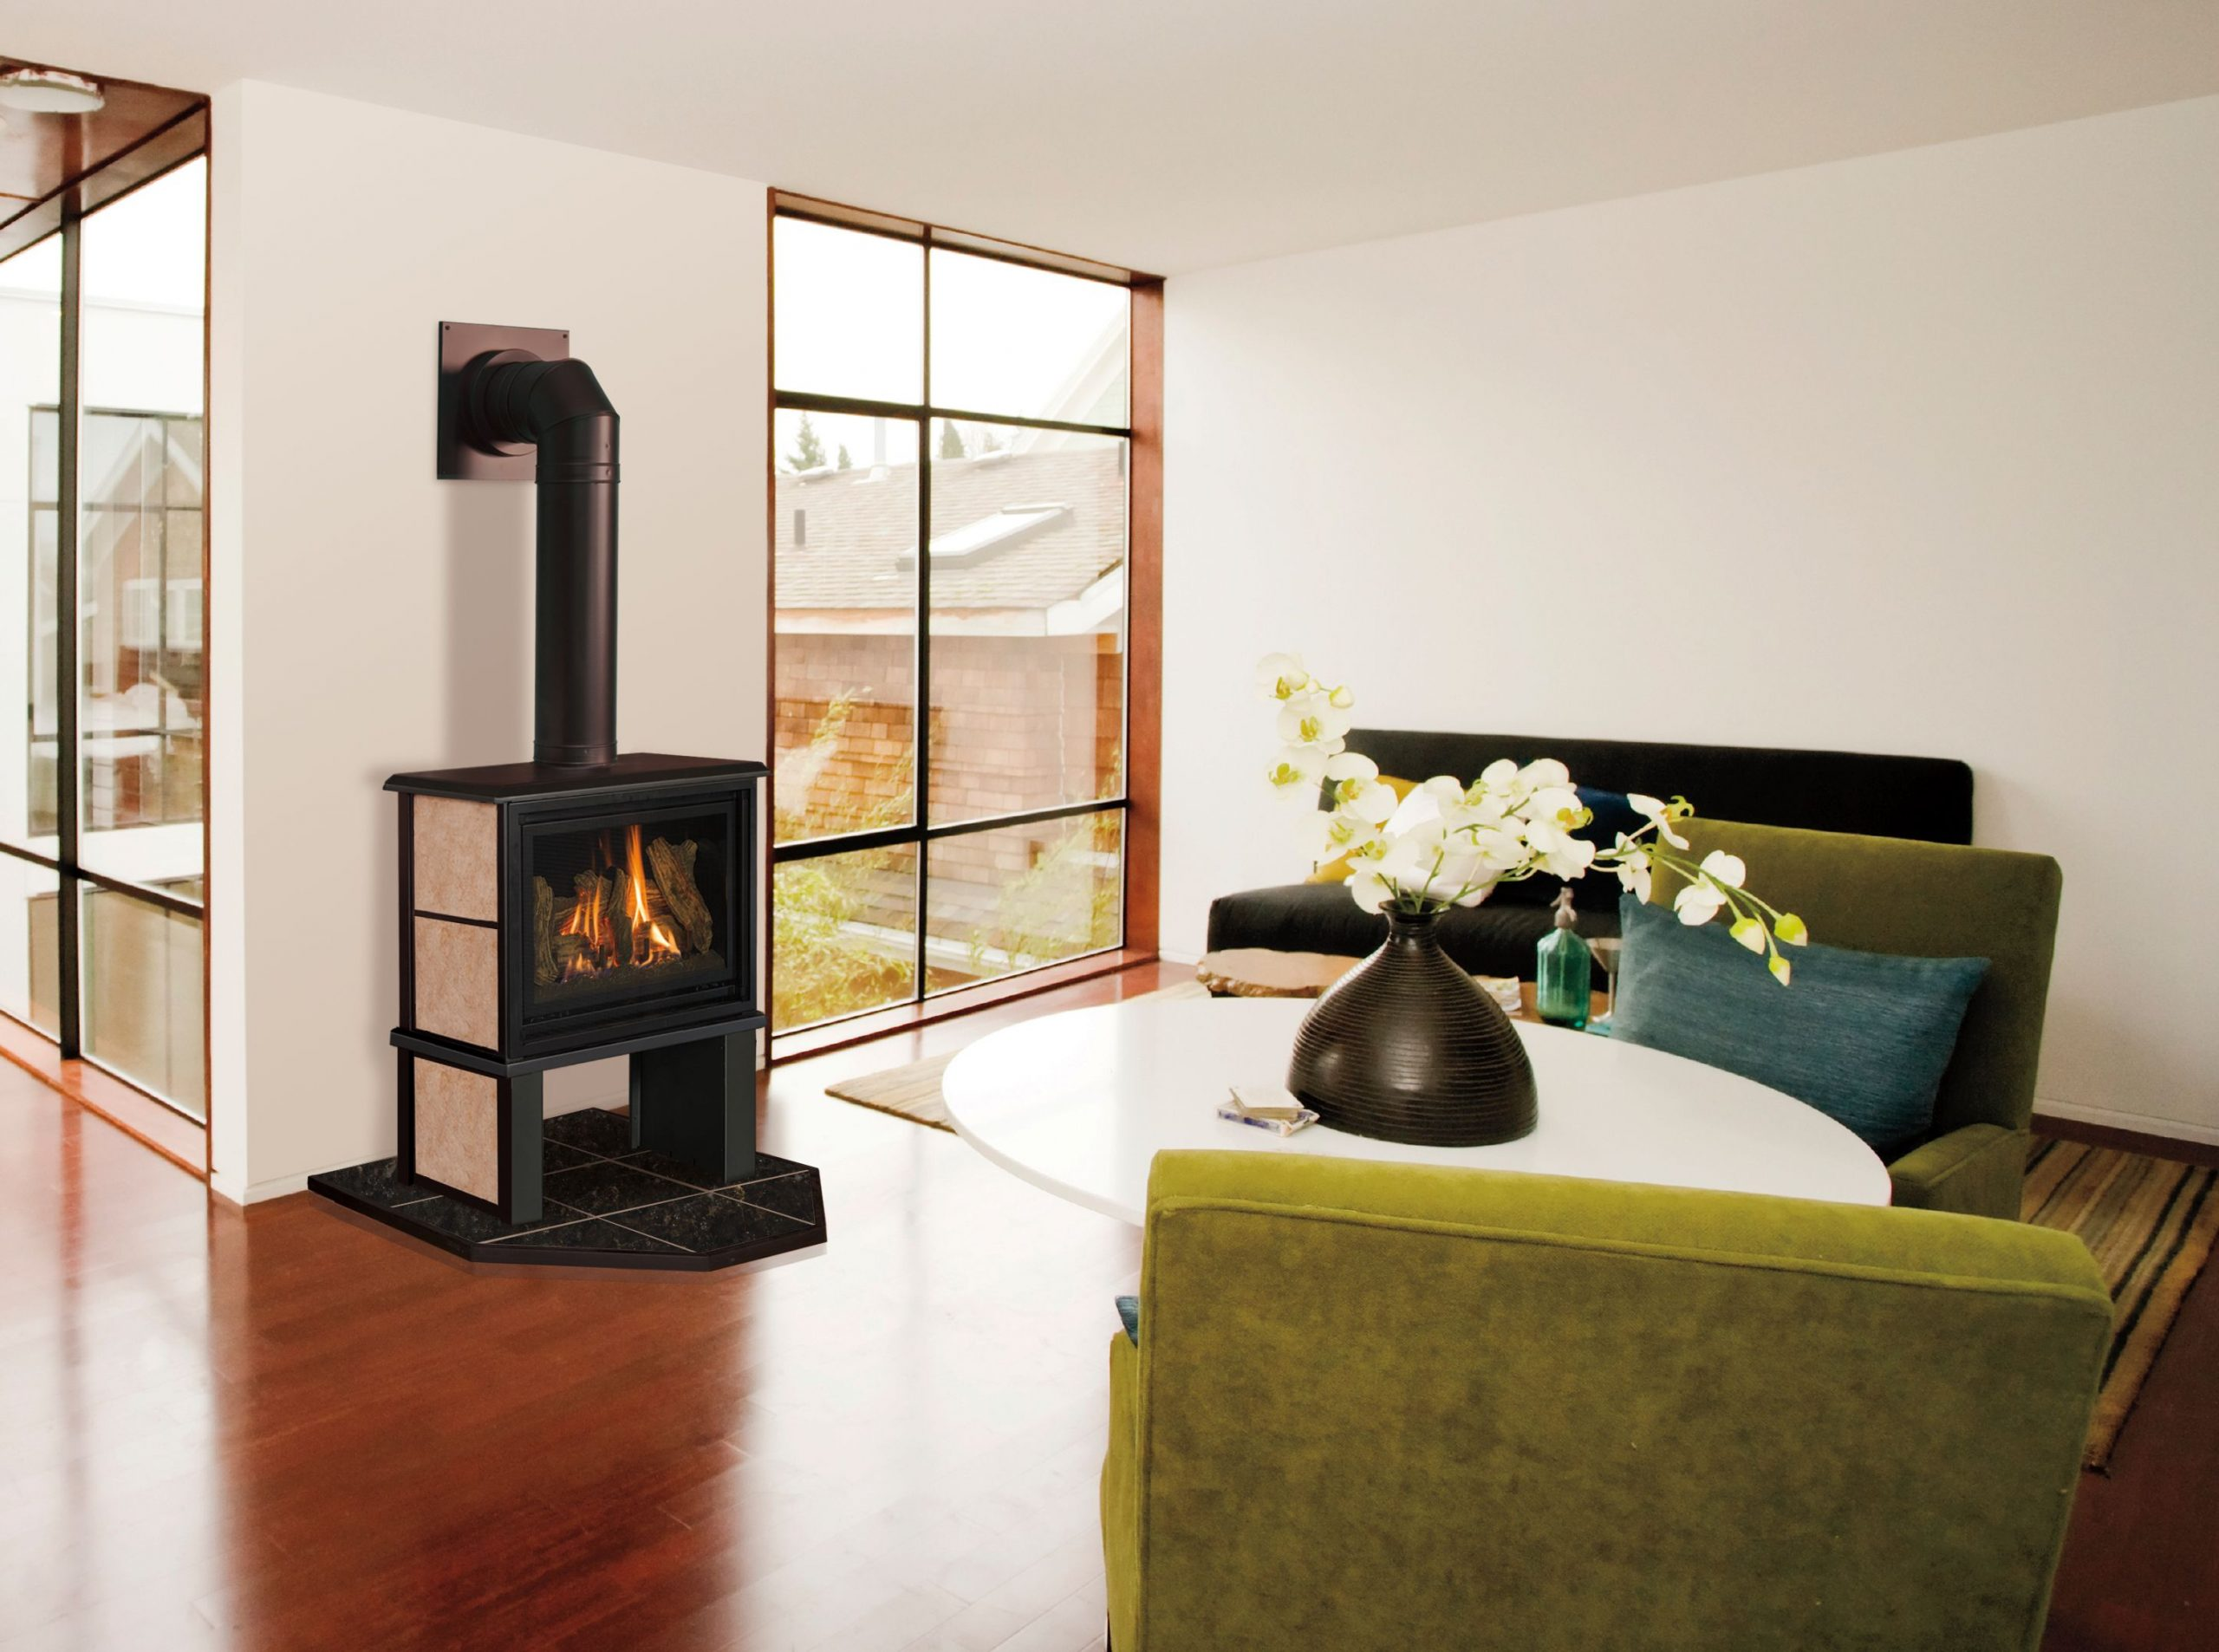 Pros and Cons to a Wood Stove